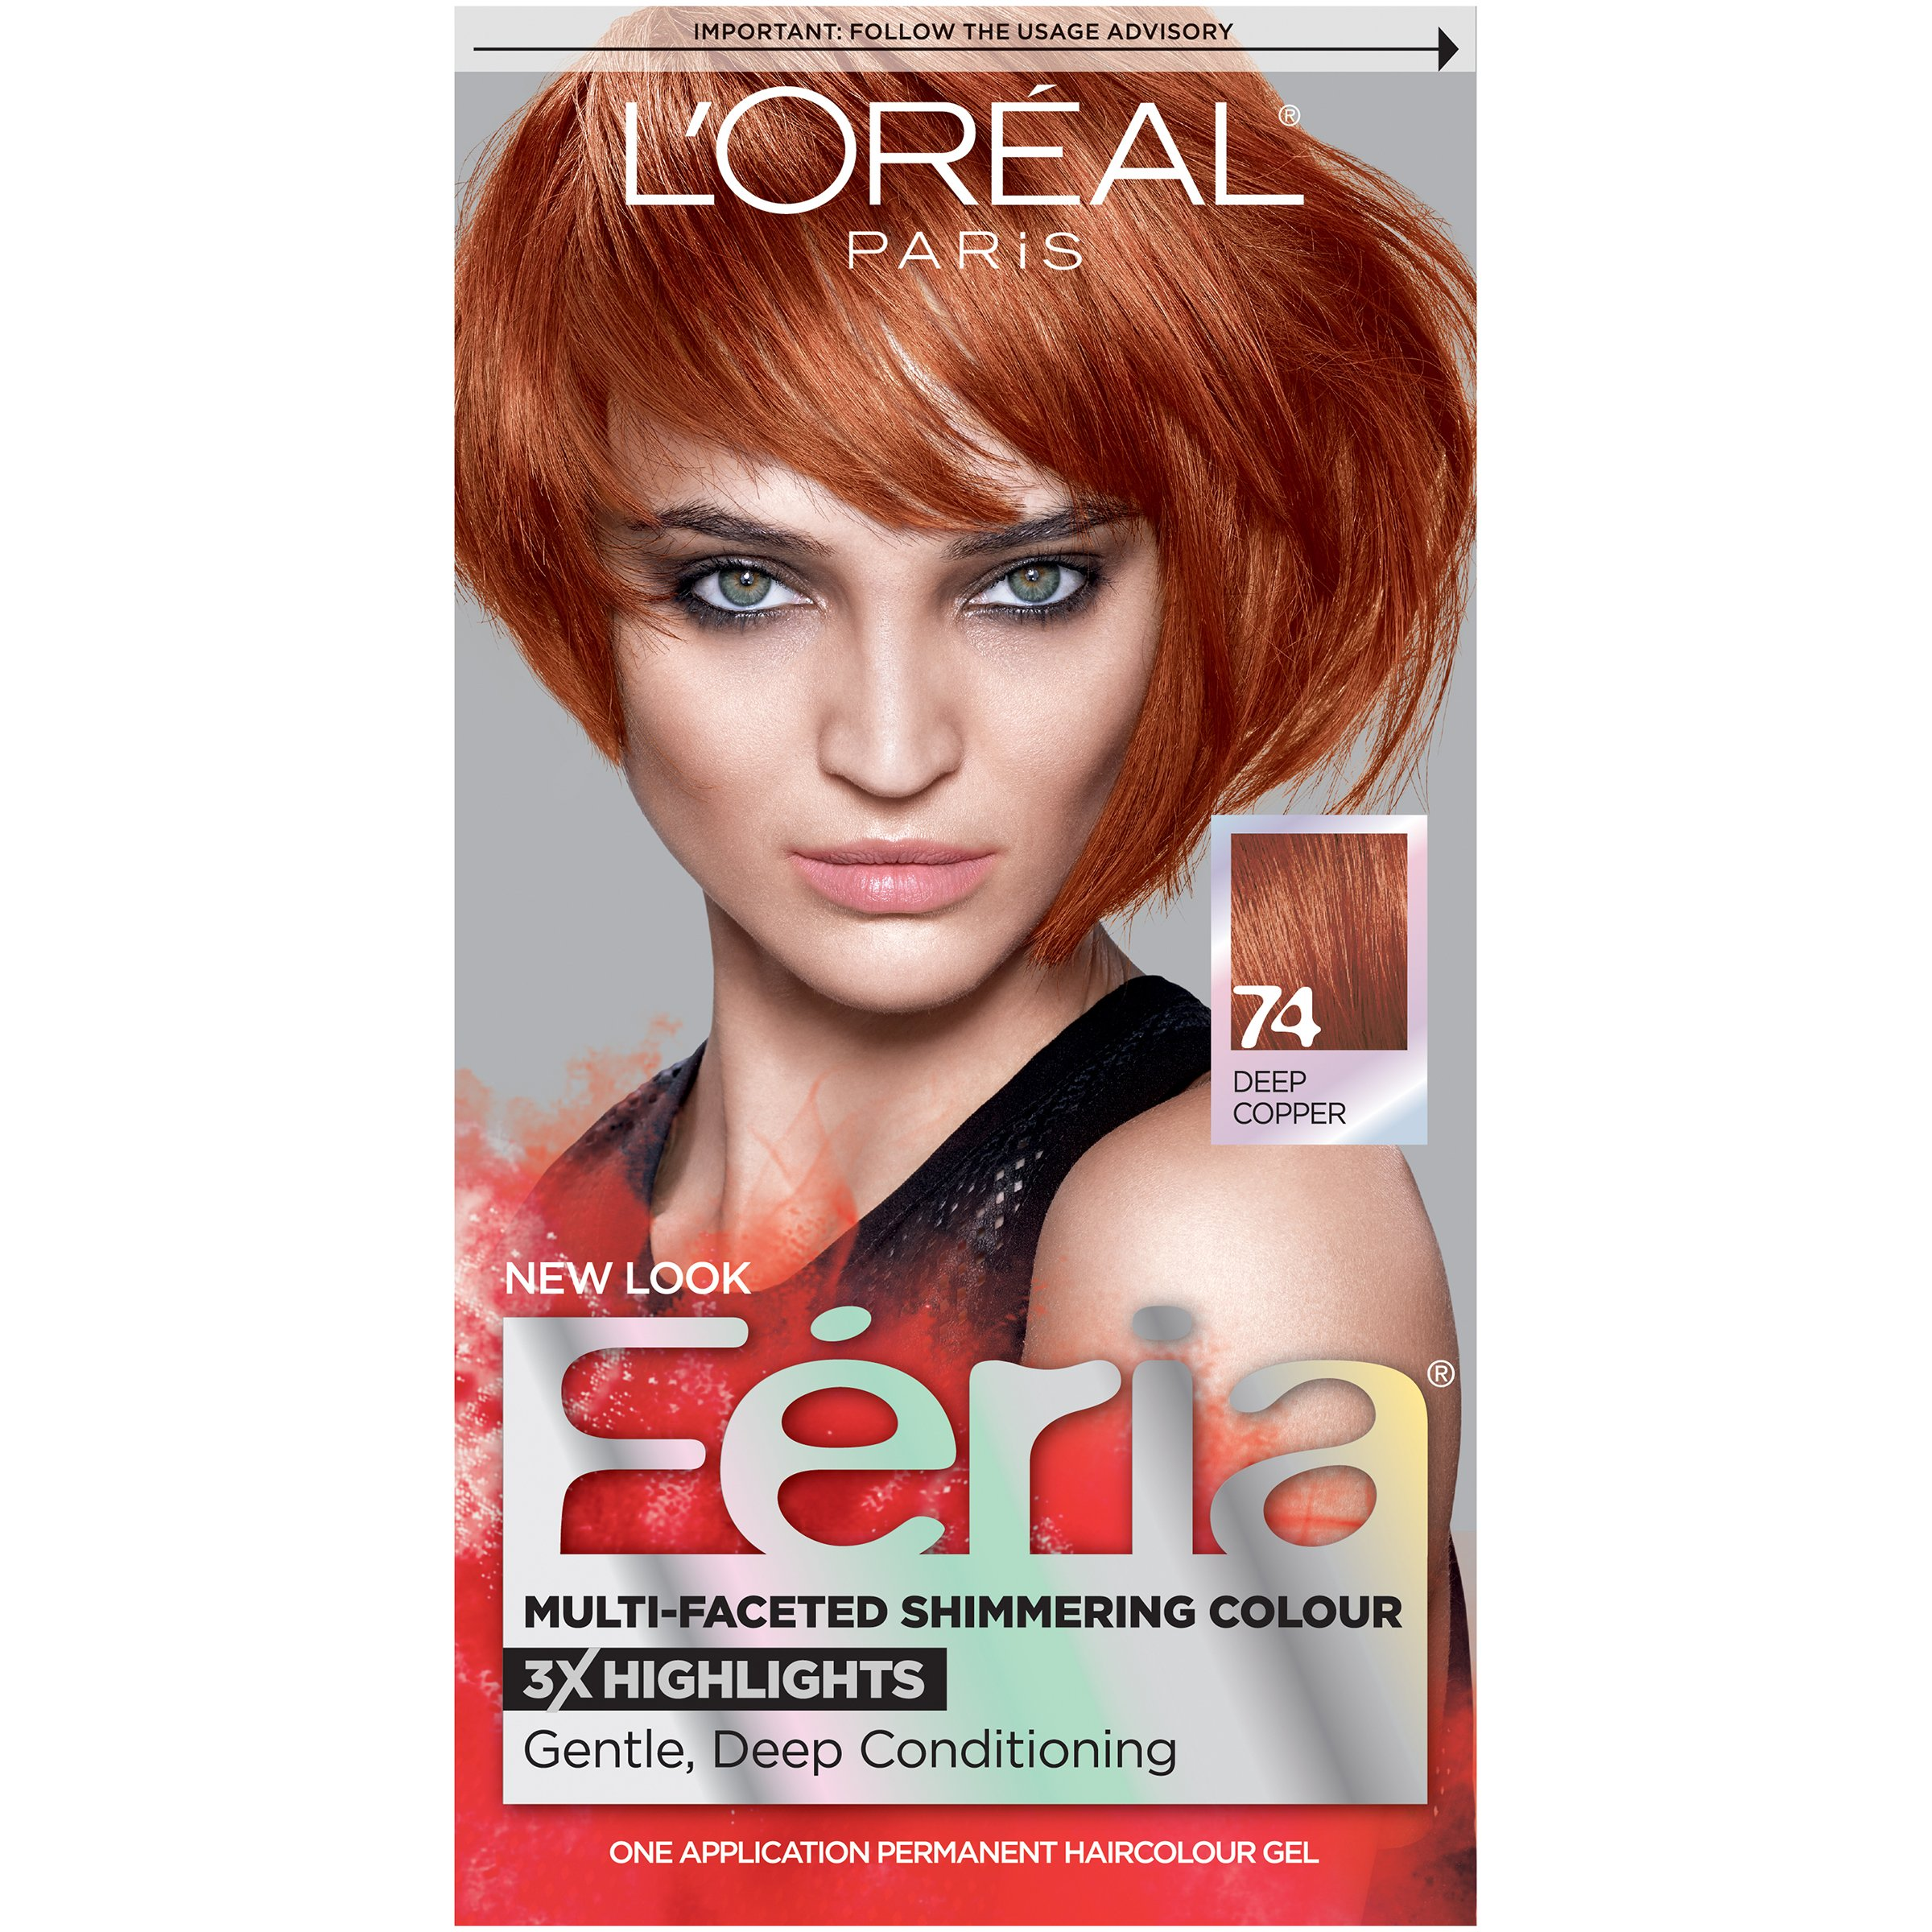 Amazon Loral Paris Feria Permanent Hair Color 74 Copper